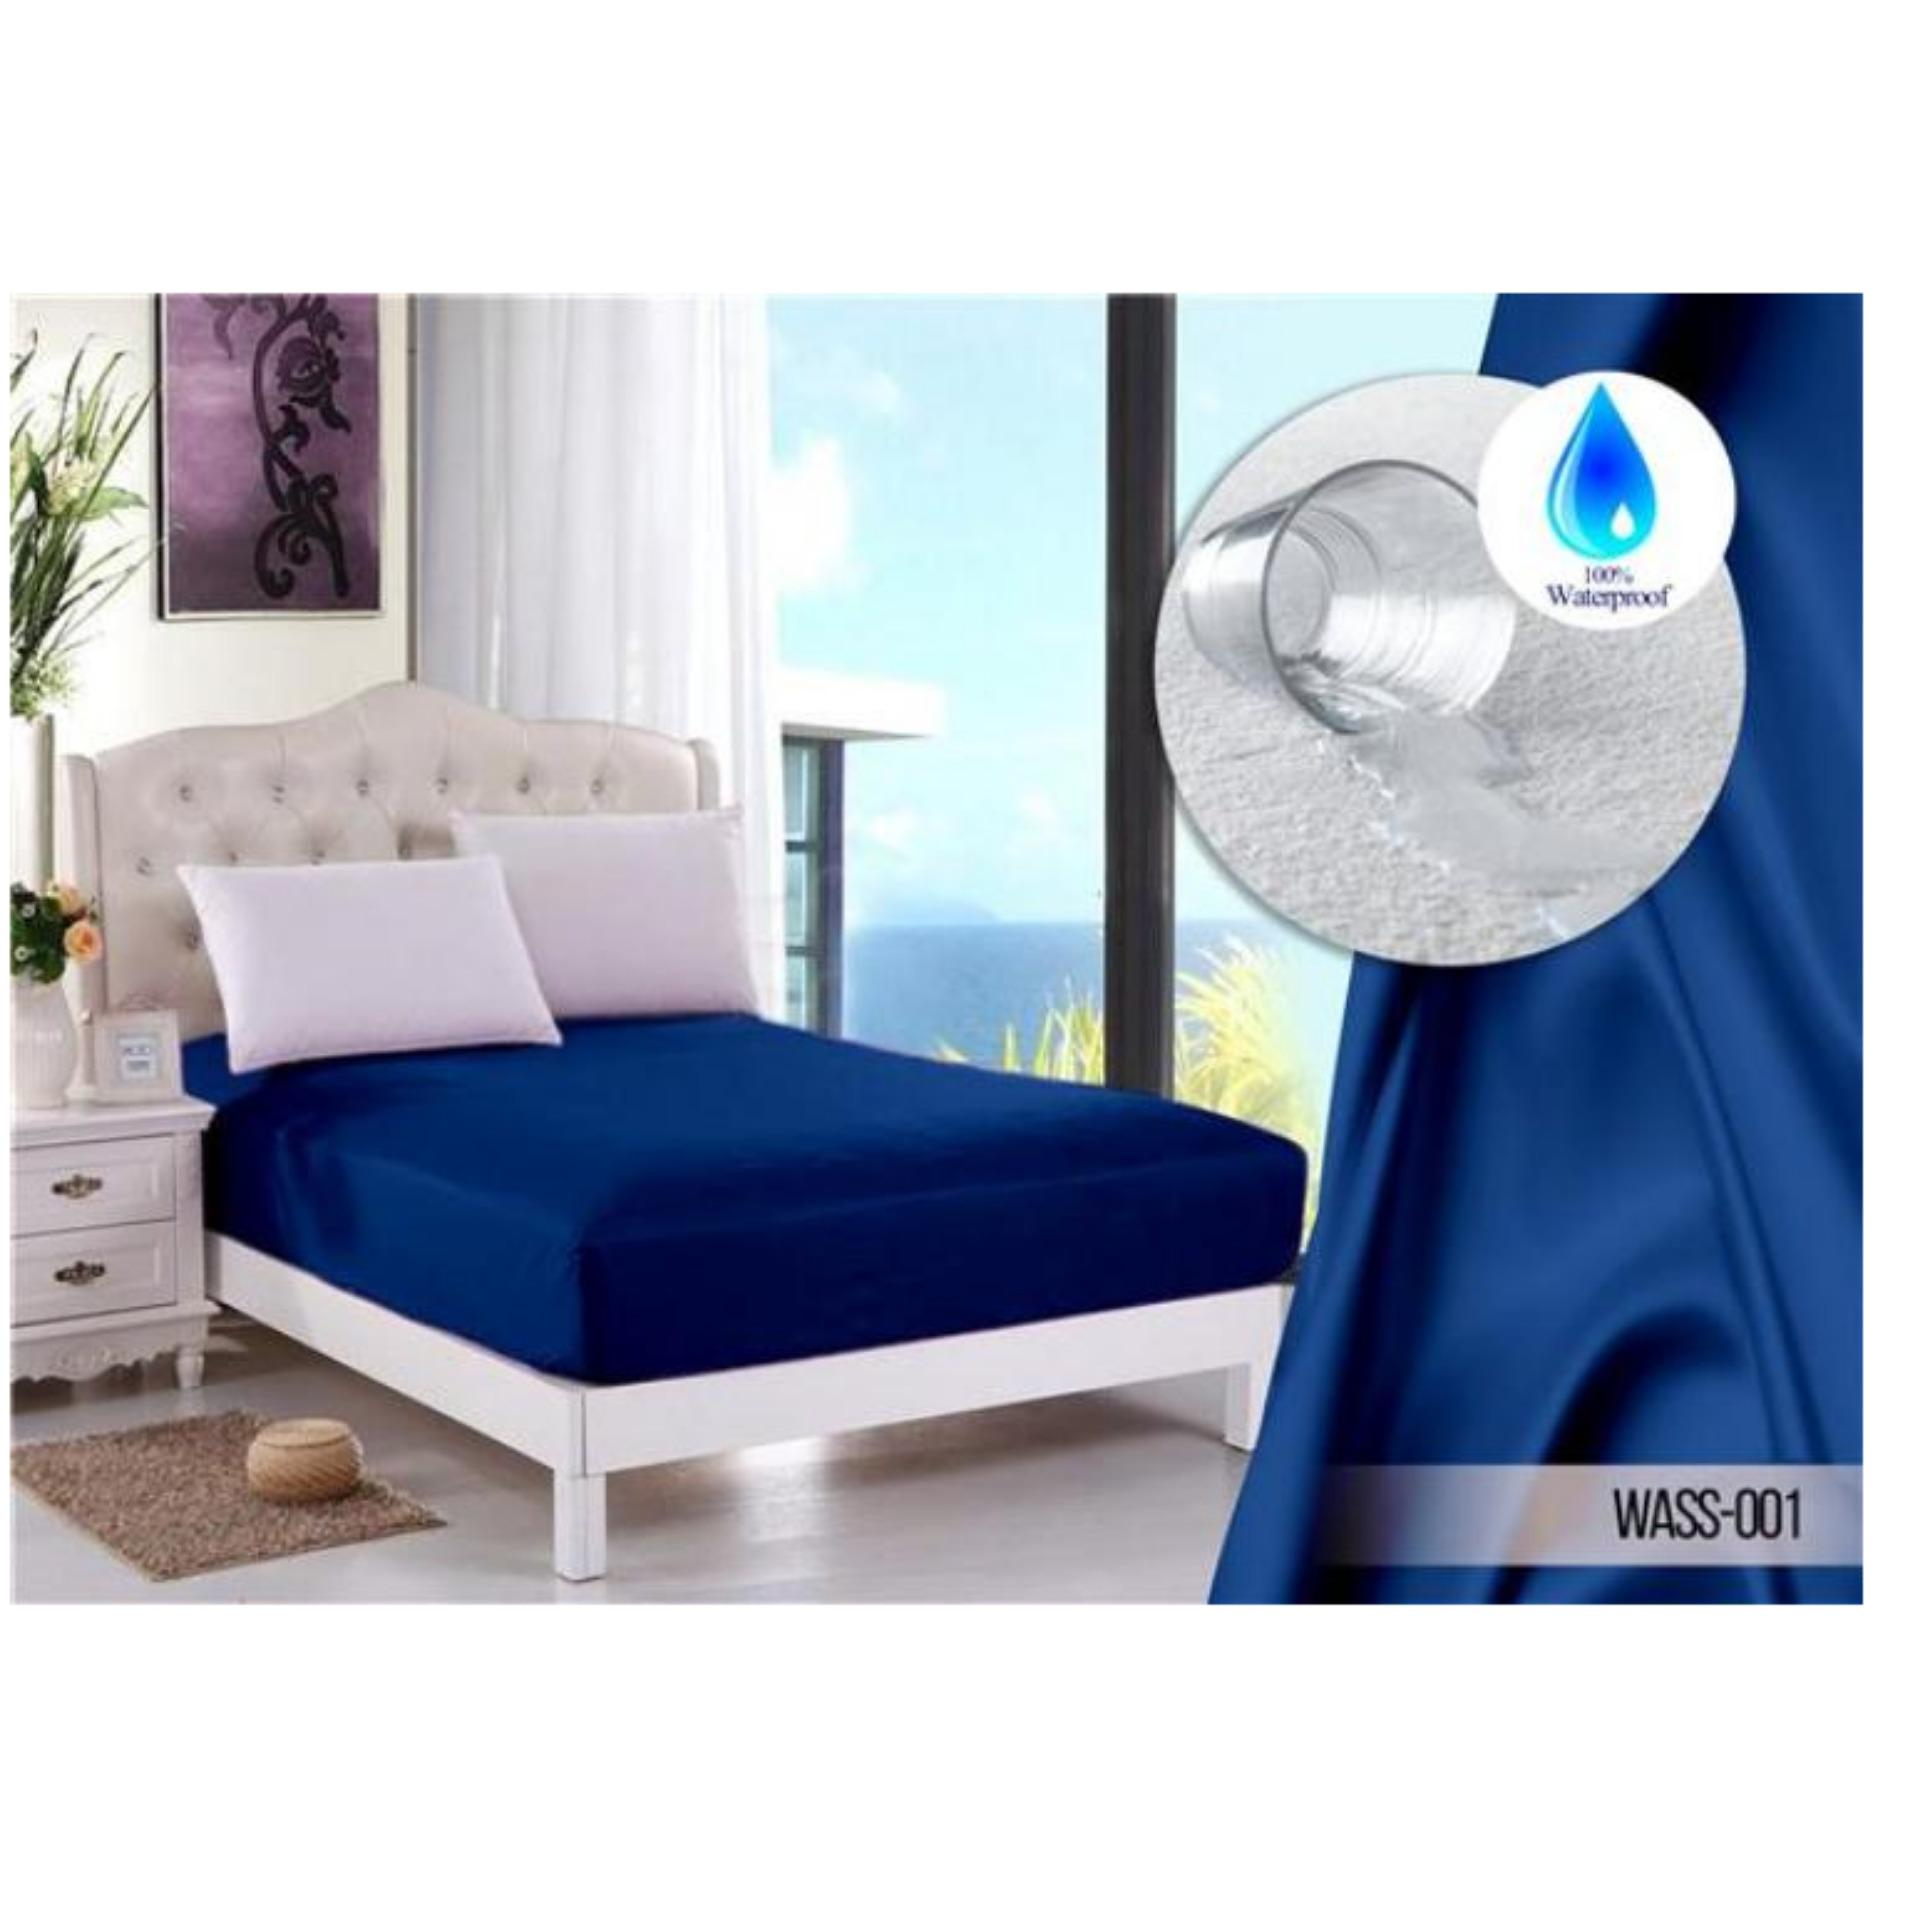 Kualitas Jaxine Sprei Waterproof Anti Air Biru Tua Jaxine